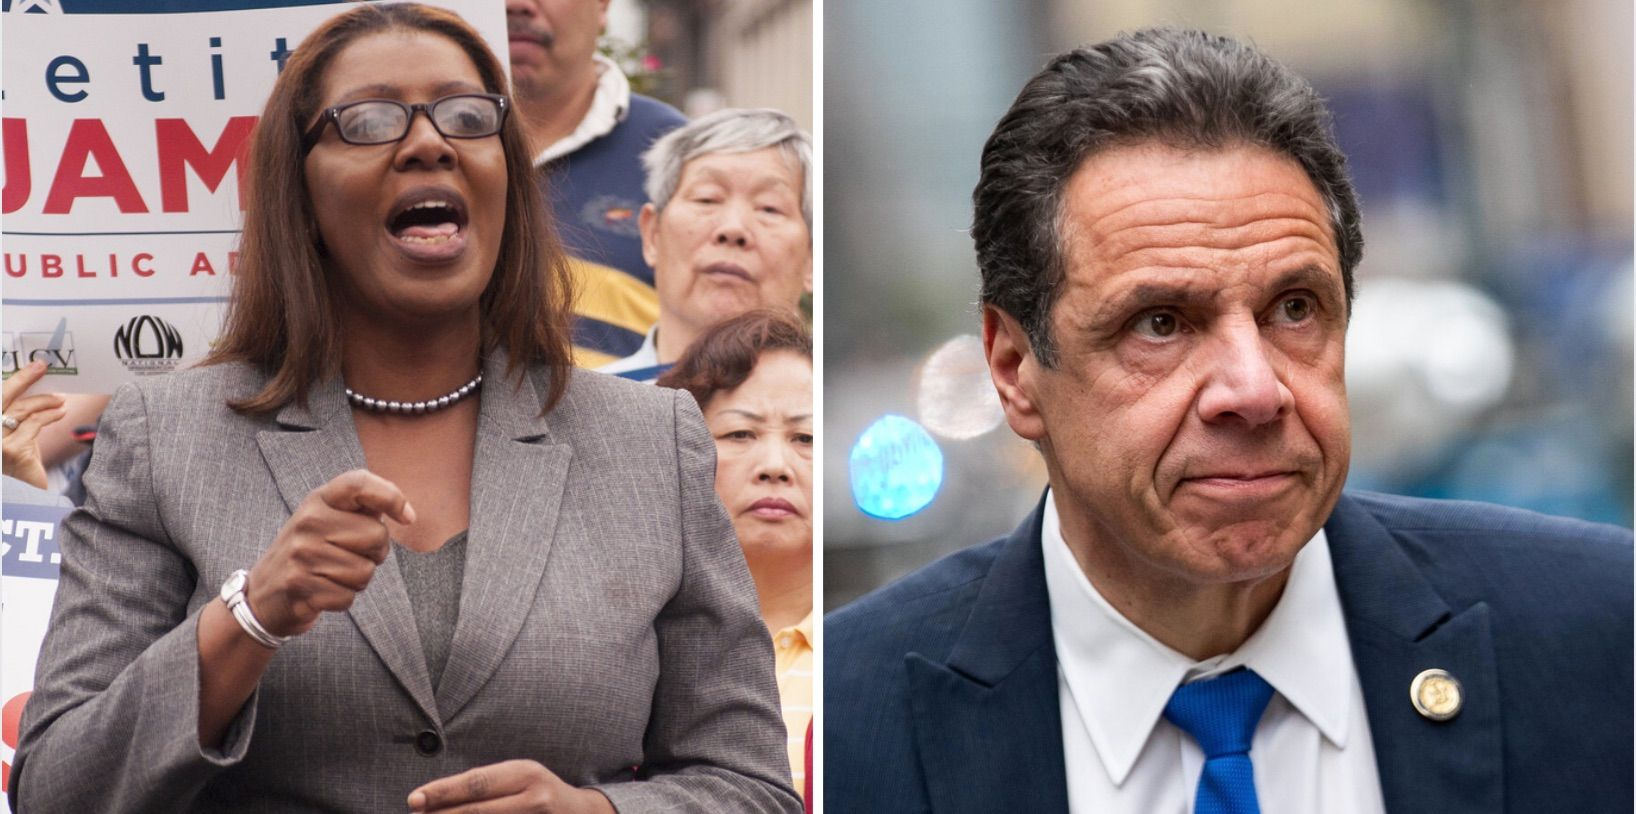 Sexual harassment claims against Cuomo to be investigated by attorneys appointed by New York AG's office